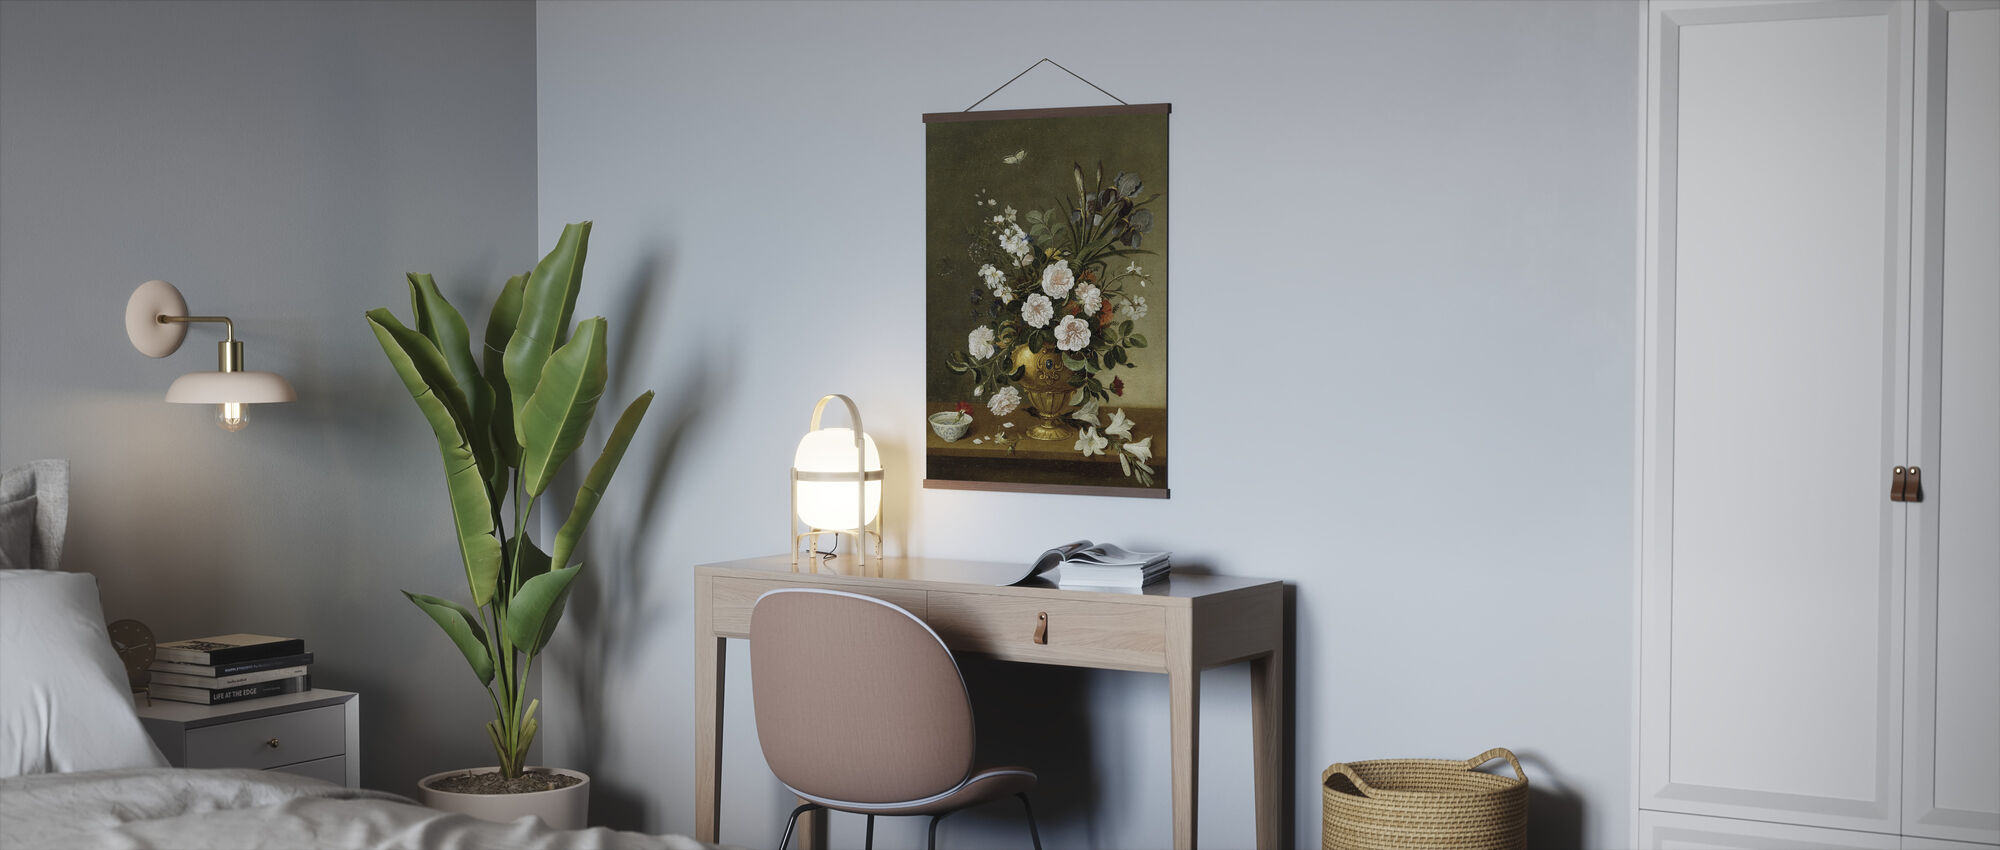 Flower Vase Painting - Pedro Camprobin - Poster - Office